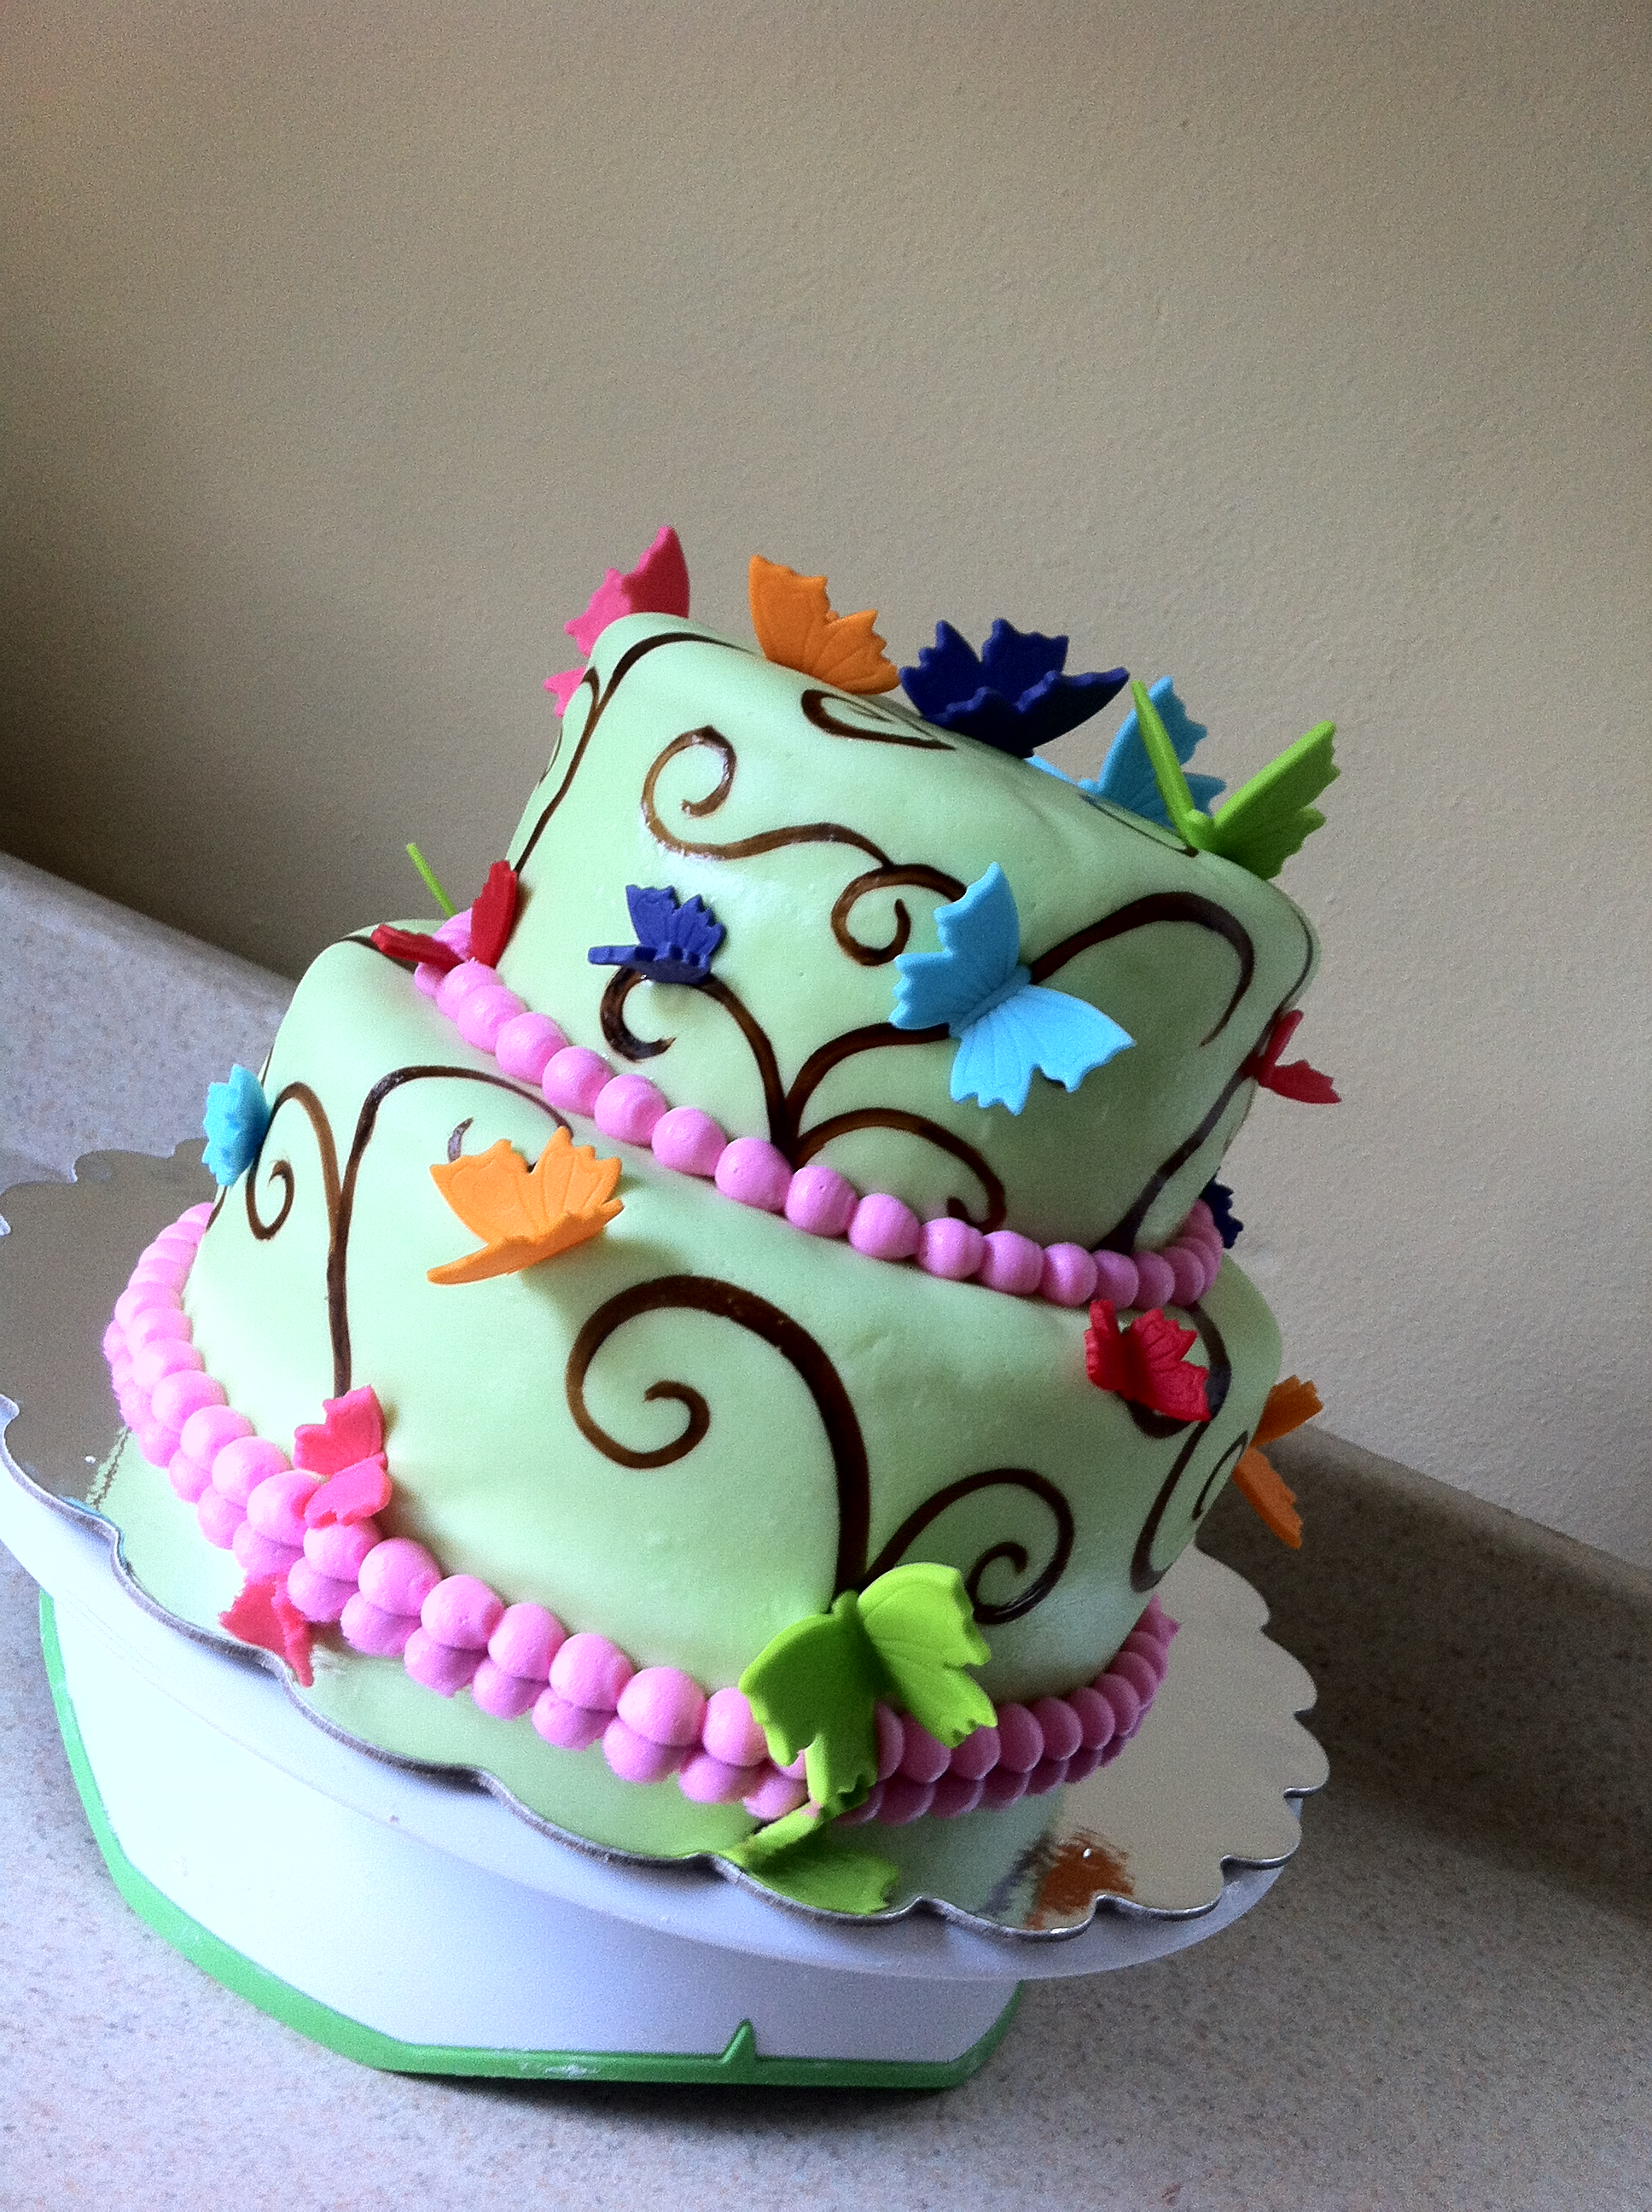 Cake Images Butterfly : Butterfly Cake Recipes   Dishmaps